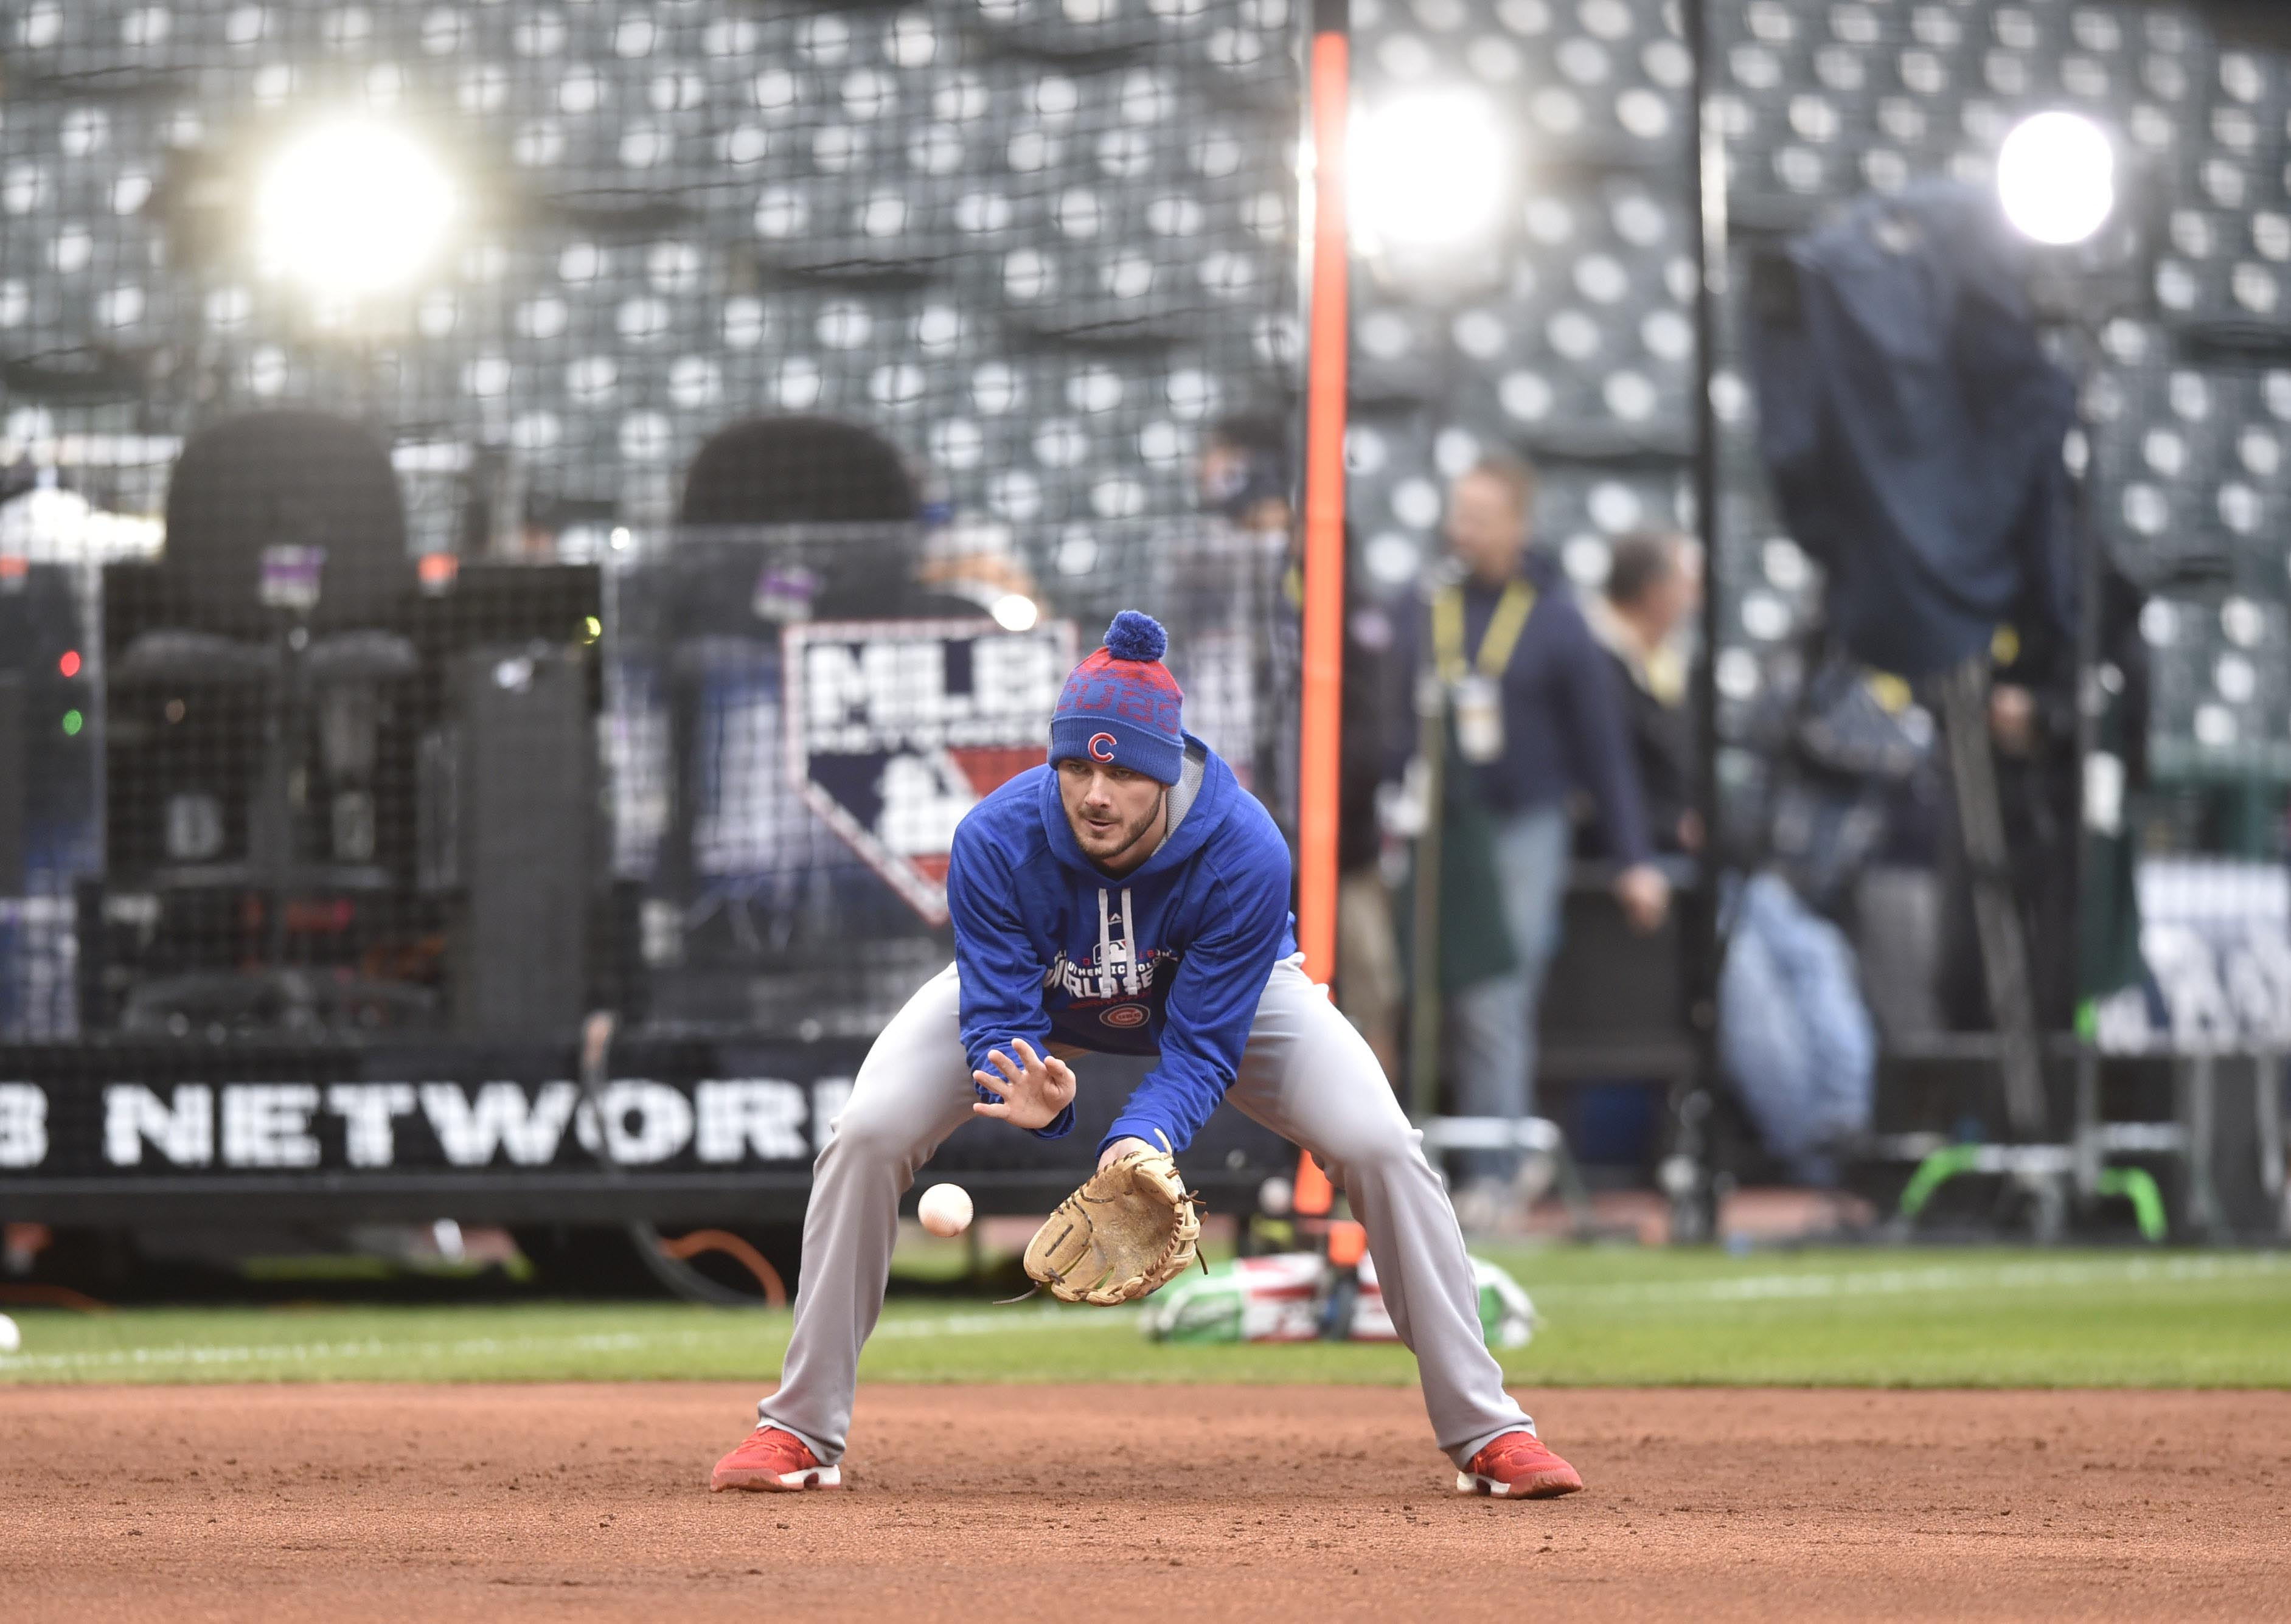 Most of the Cubs are young, but they're no stranger to the bright lights of the playoffs. But the World Series is a whole new ballgame. (David Richard/USA TODAY Sports)